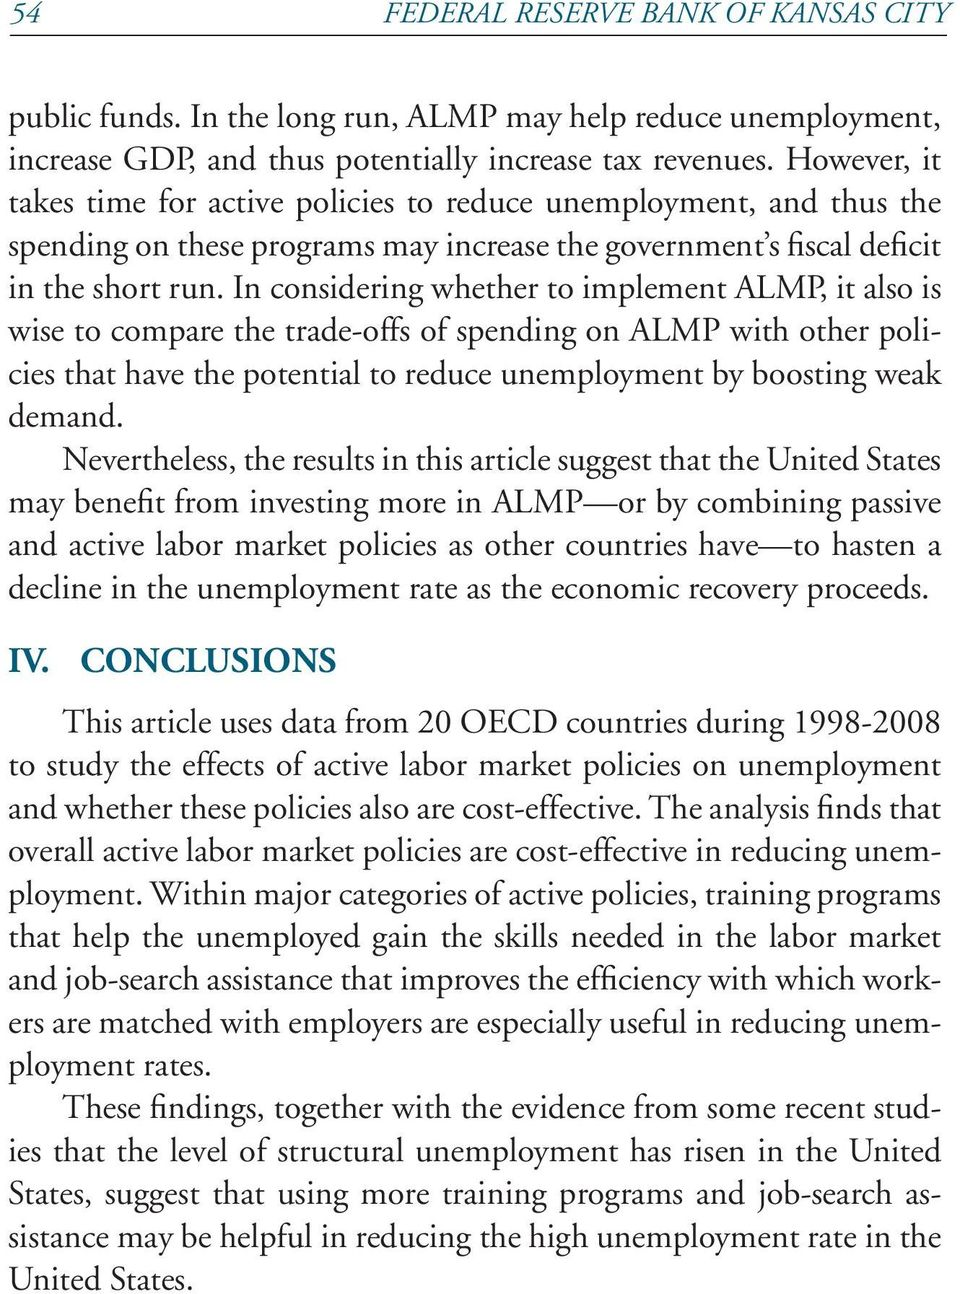 In considering whether to implement ALMP, it also is wise to compare the trade-offs of spending on ALMP with other policies that have the potential to reduce unemployment by boosting weak demand.